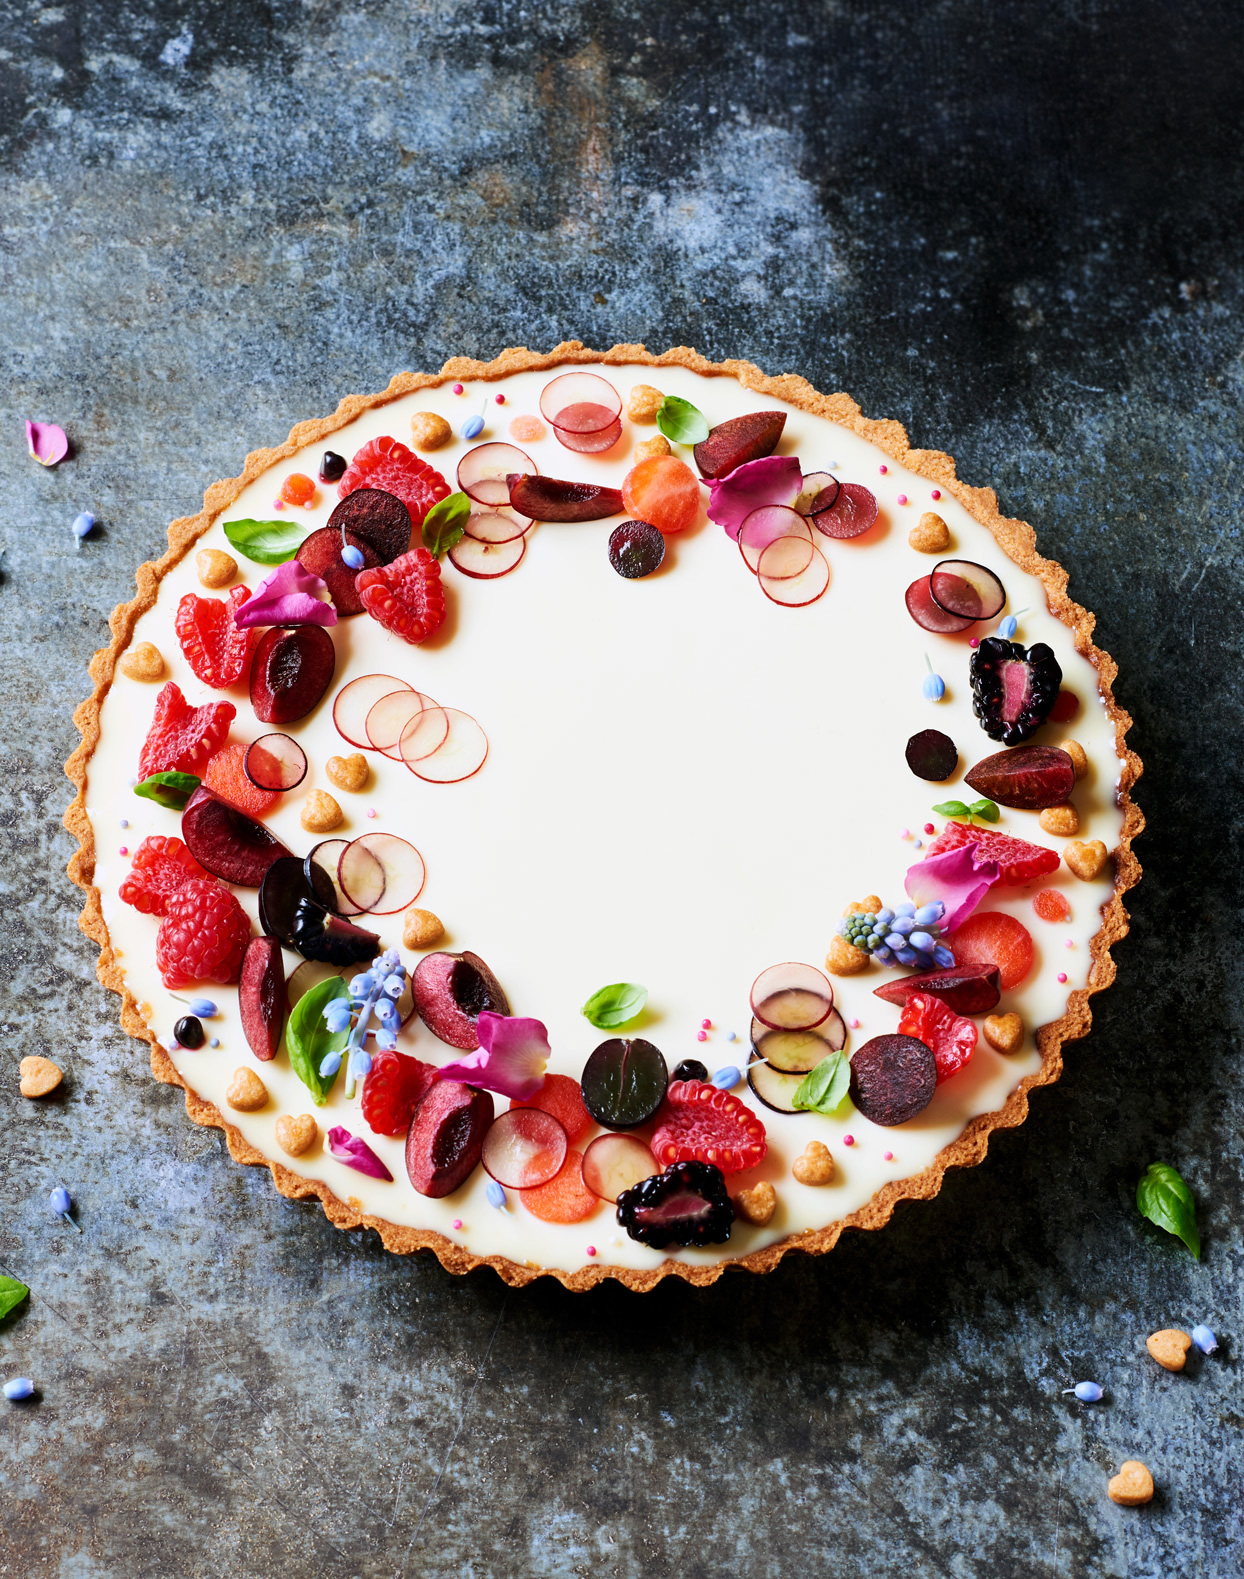 chamomile panna-cotta tart topped with edible flowers